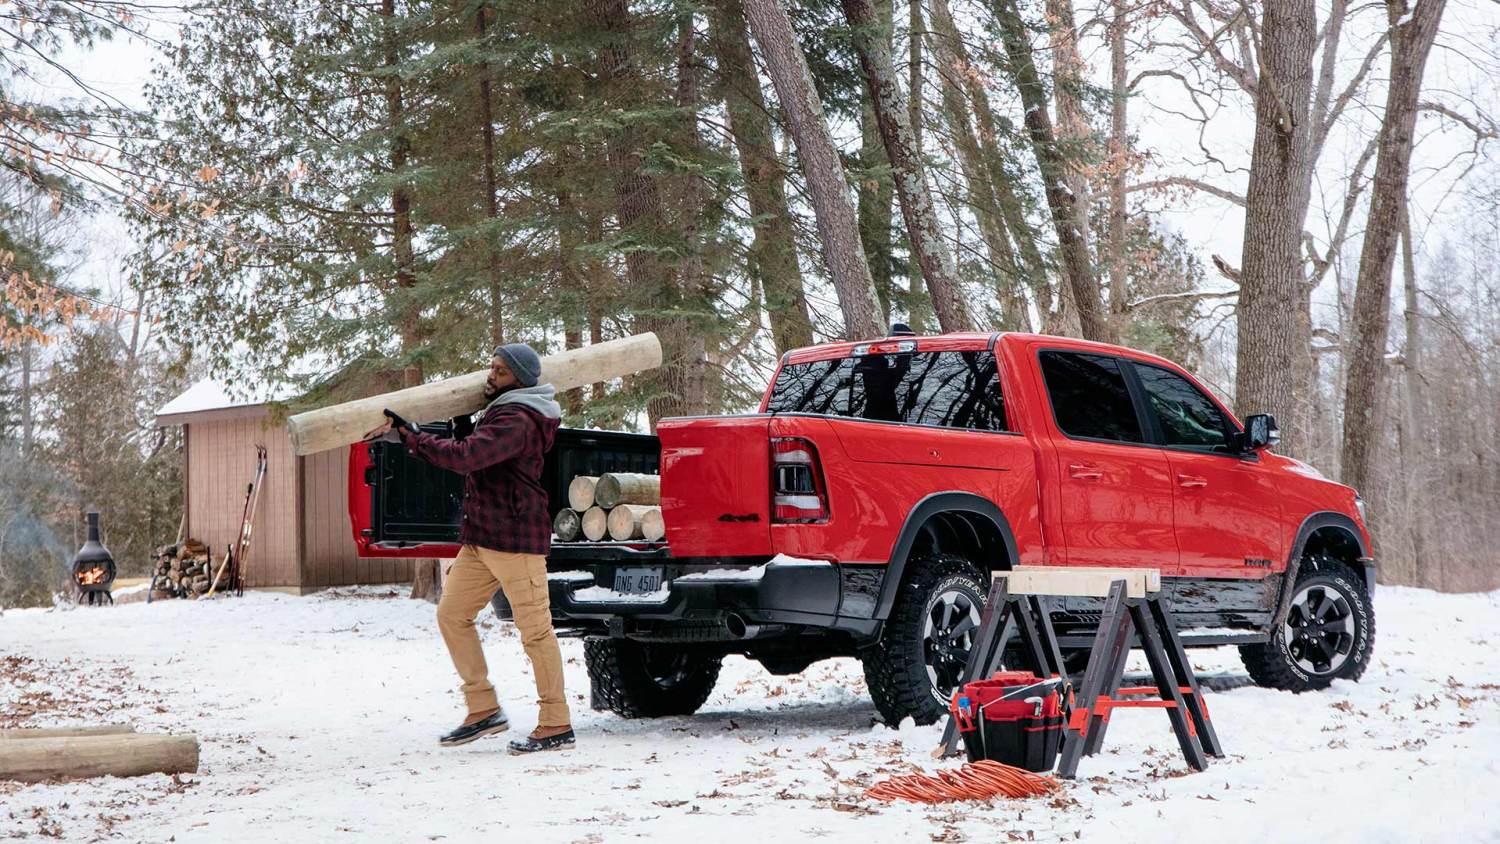 2019 Ram 1500 is best truck for New England winters